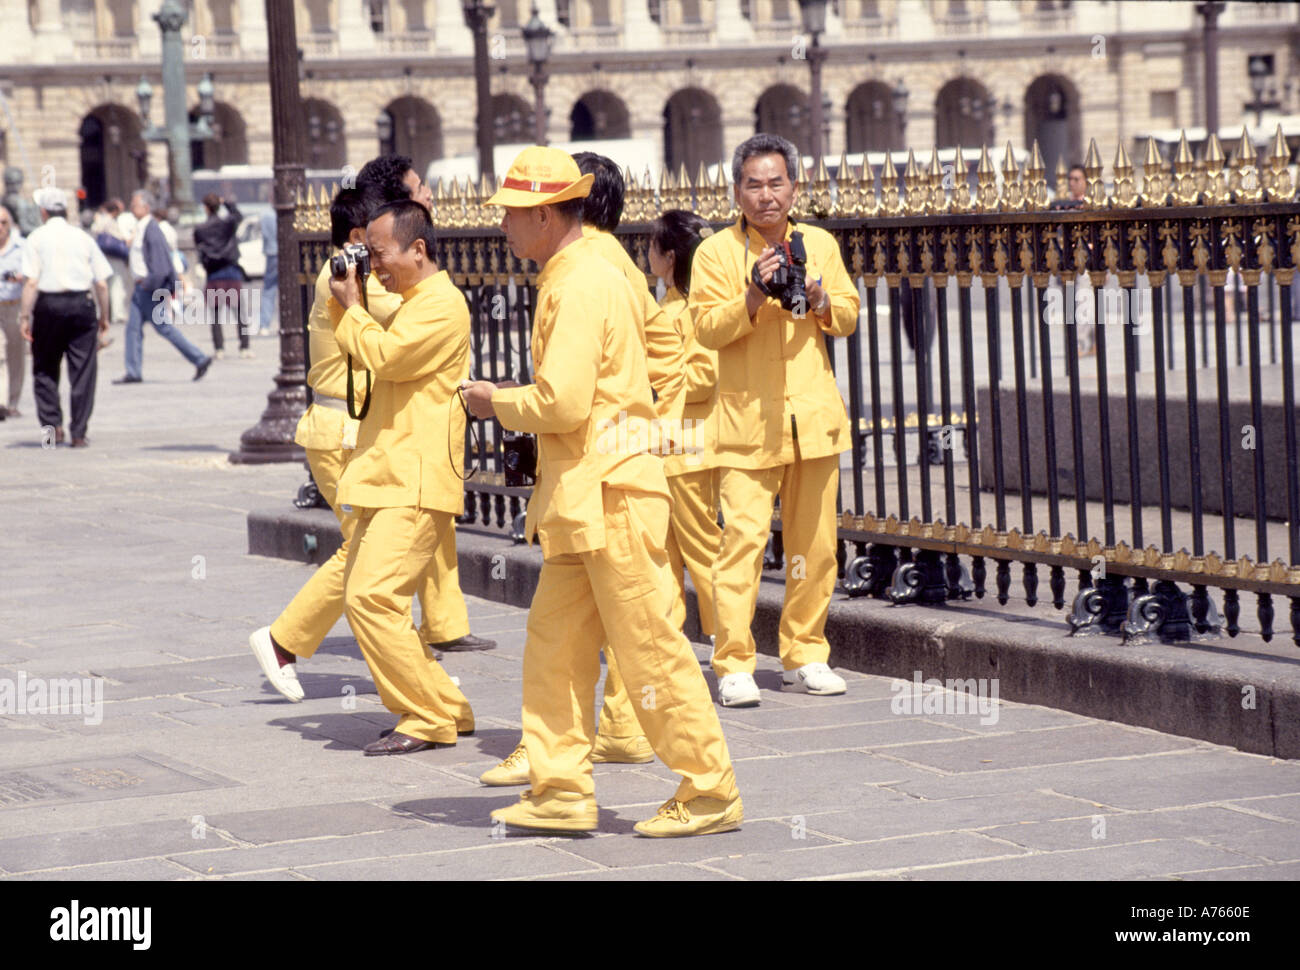 Tourists assumed dressed in yellow as members of visiting sports team sightseeing in French Place De La Concorde Paris street scene France - Stock Image